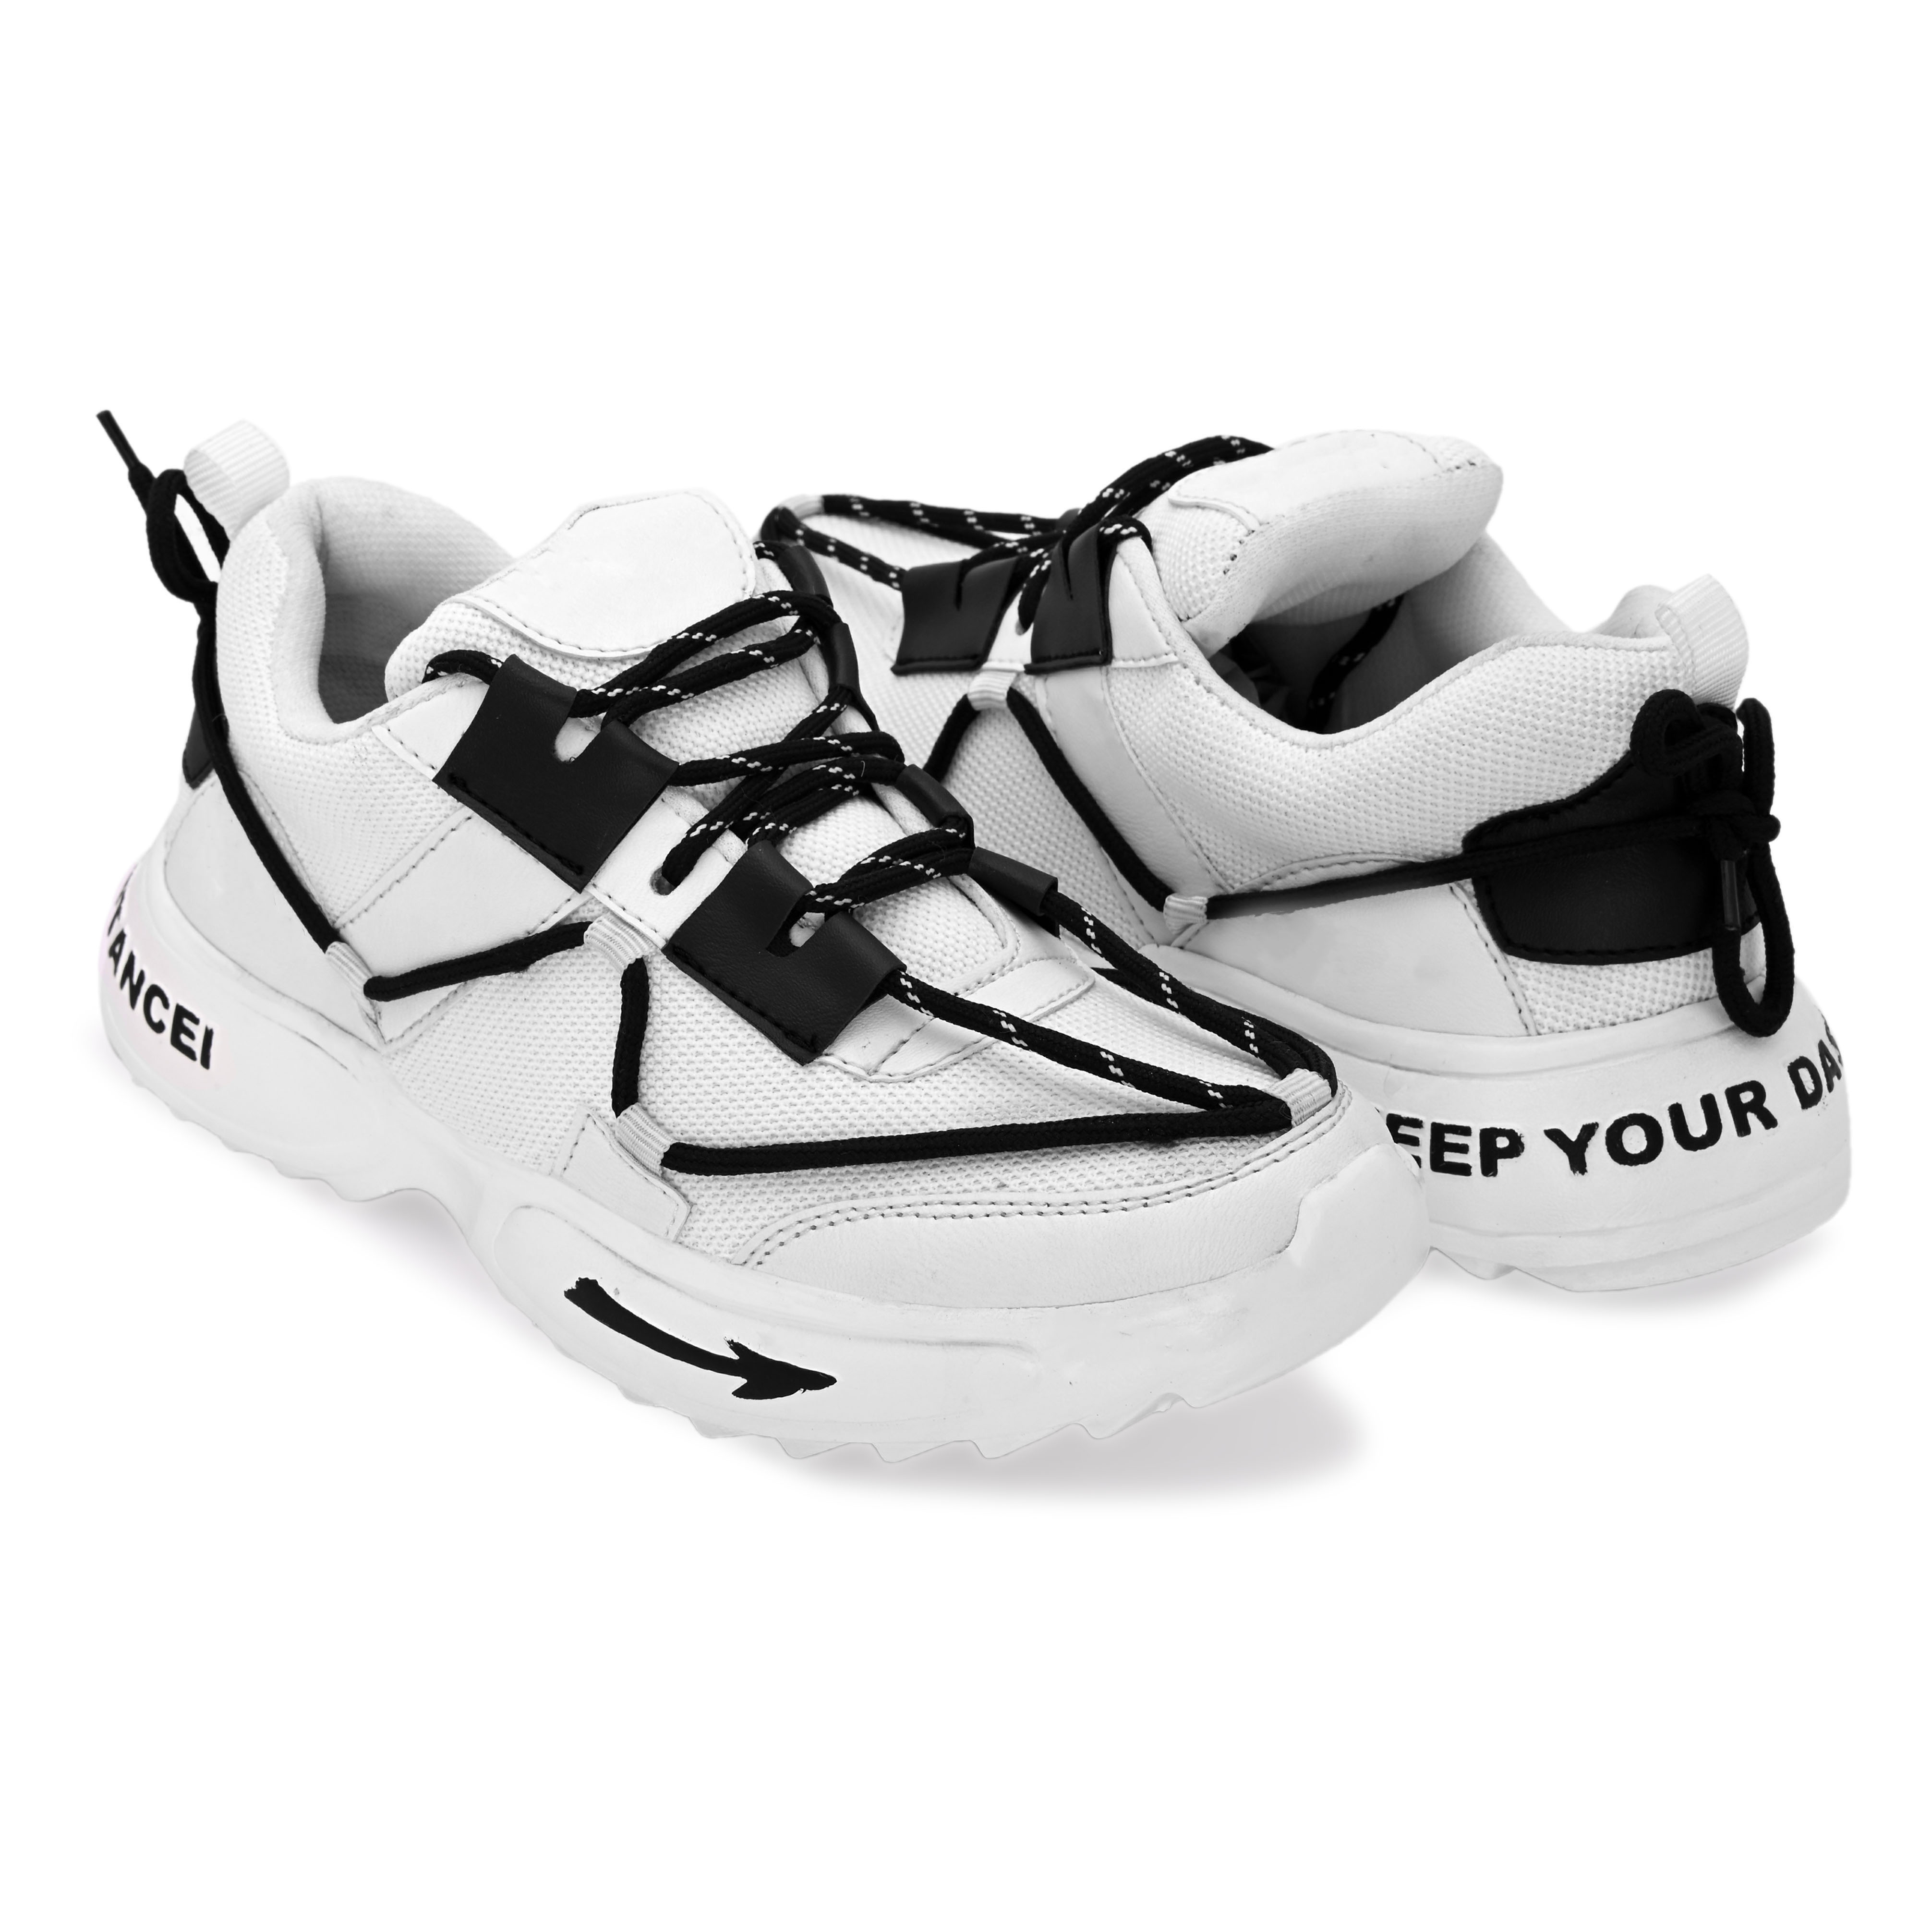 BRIFAR COMFORTABLE & TRENDY SPORTS SHOES ARE RELIABLE FOR ANY BFS0815WHT1 (7-10, WHITE, 4 PAIR)